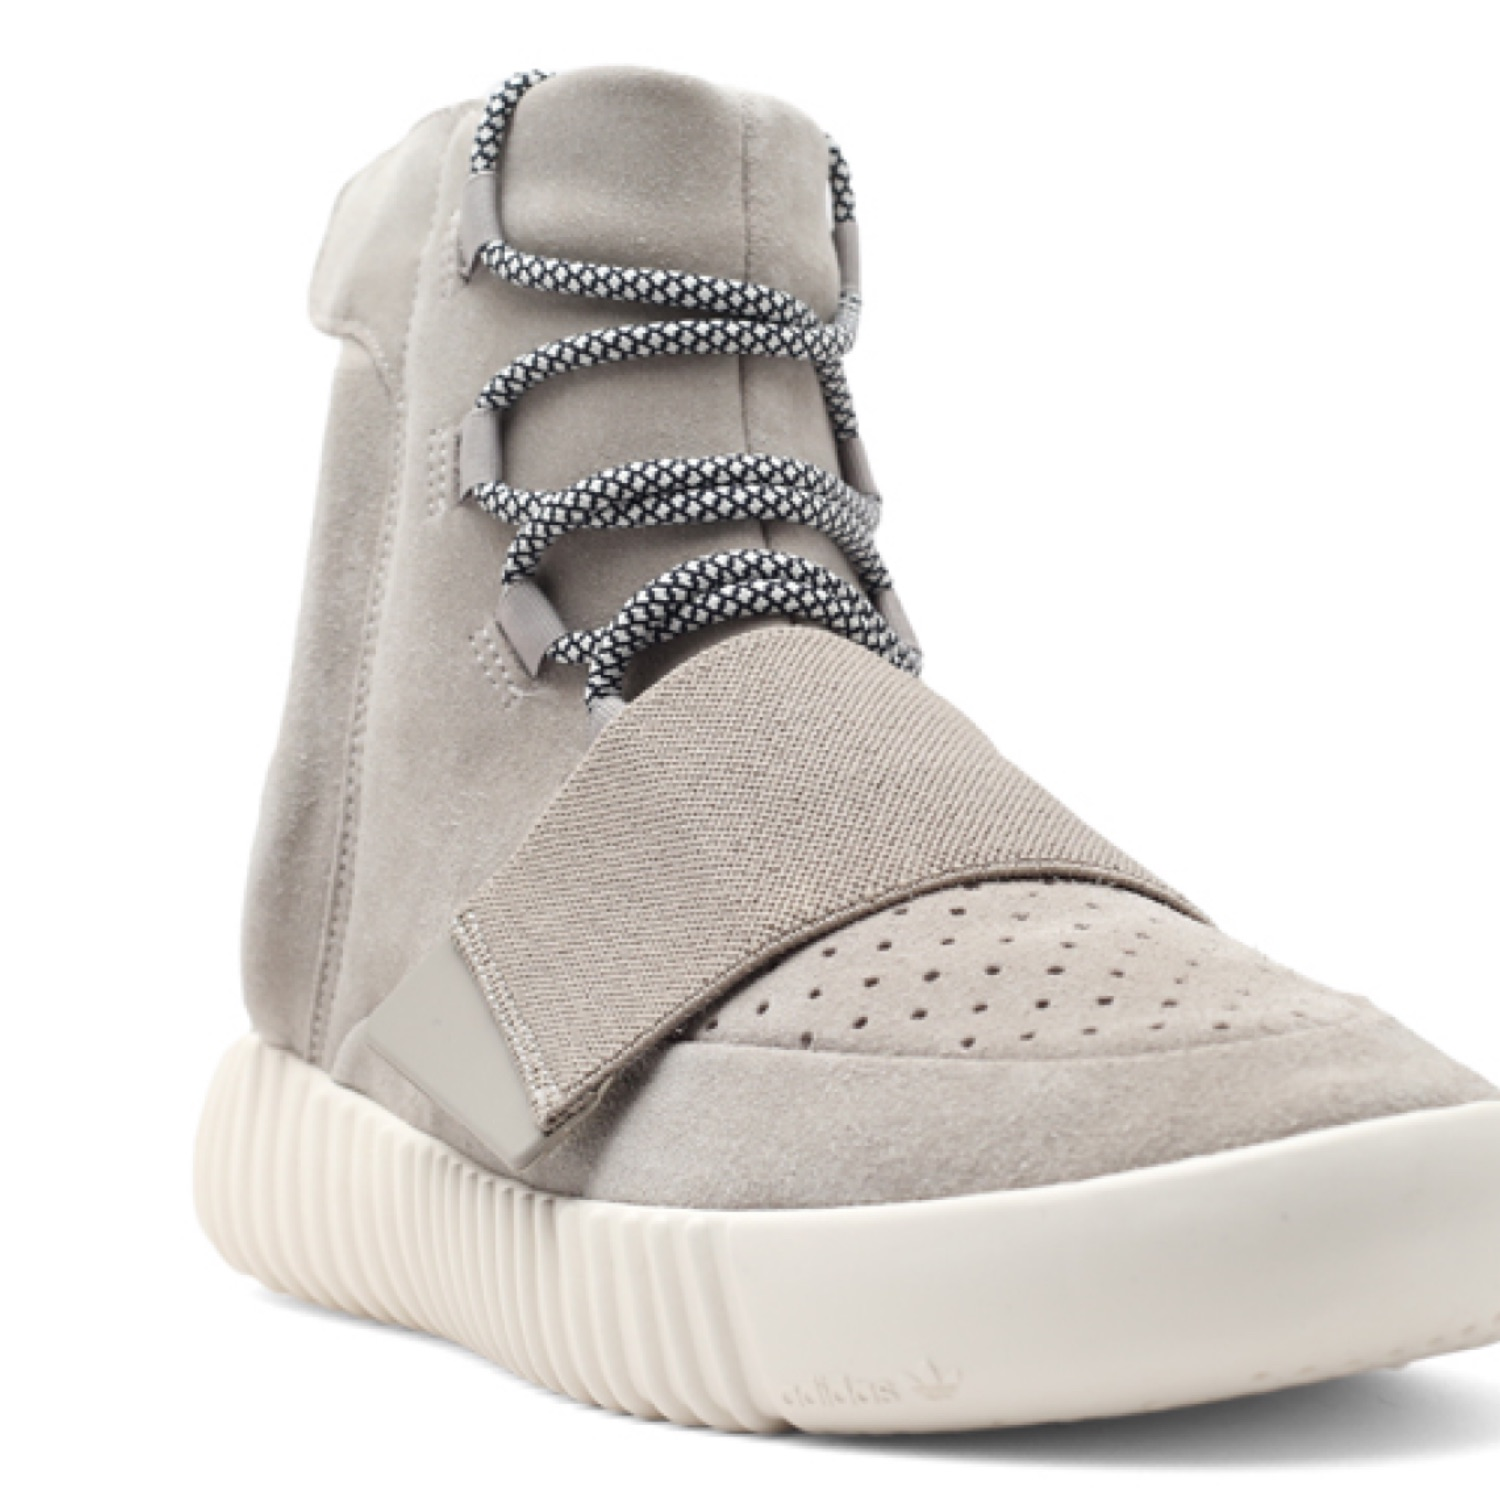 sneakers for cheap 886c1 0aeb9 Yeezy Og 750 Boost 2015